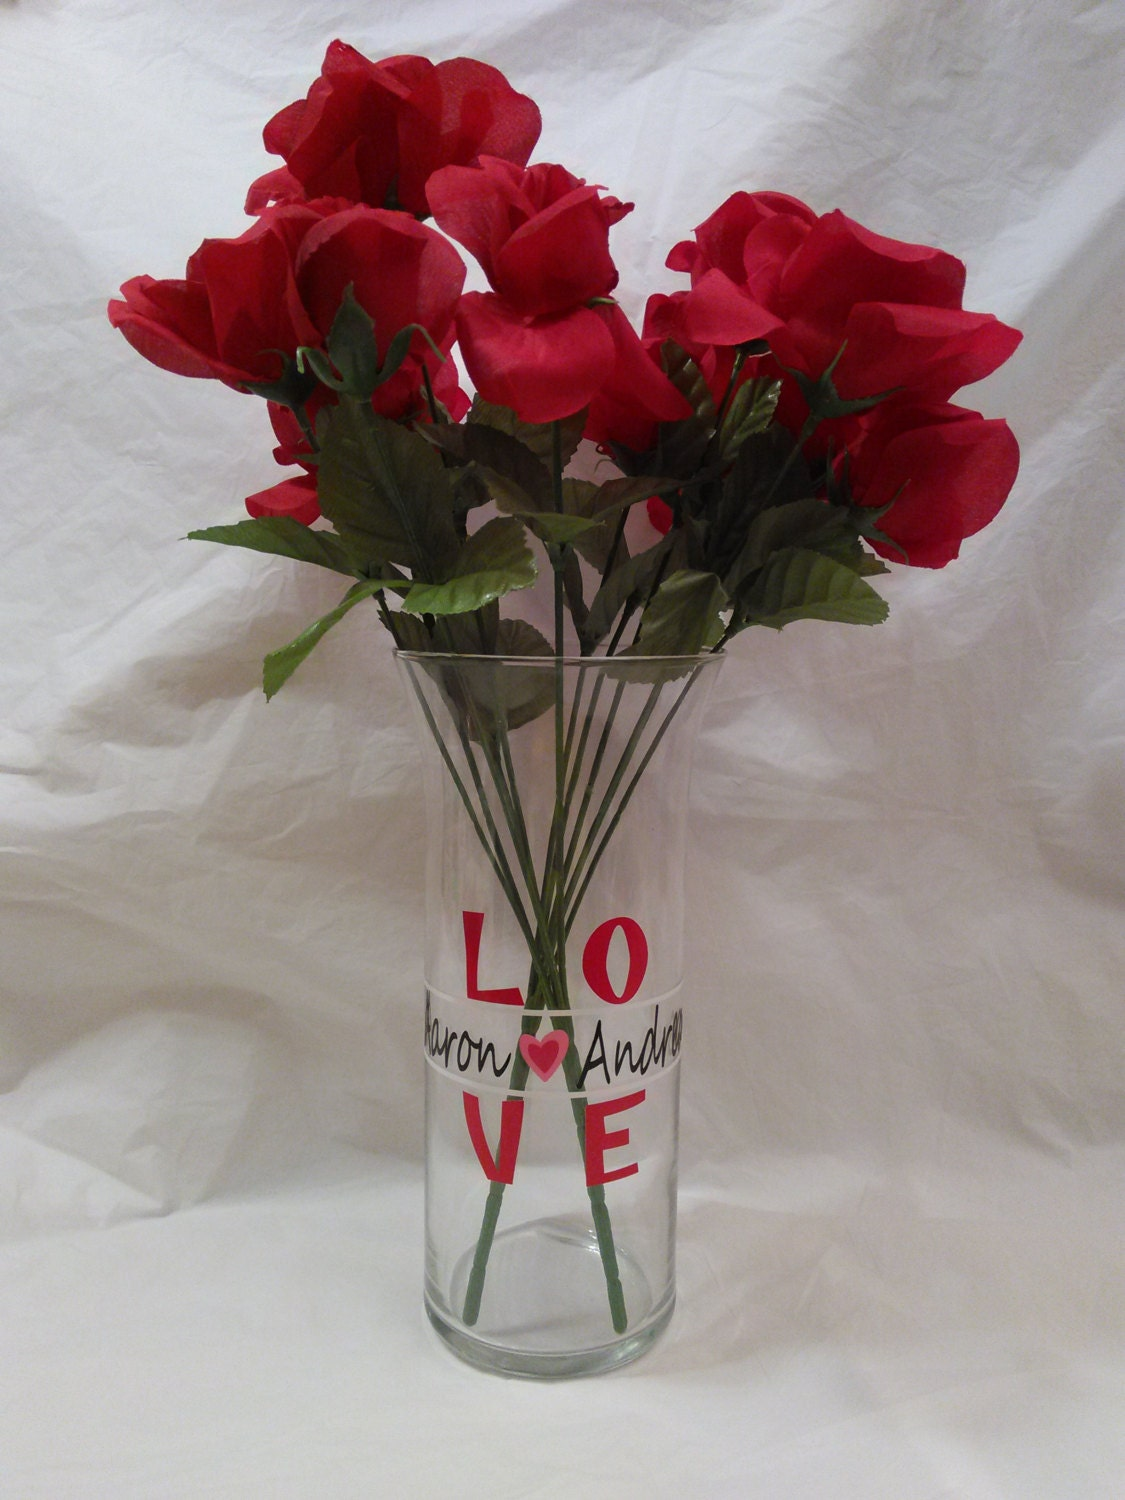 as wedding fullxfull utens personalized utensil or anniversary use gift a products vase il holder